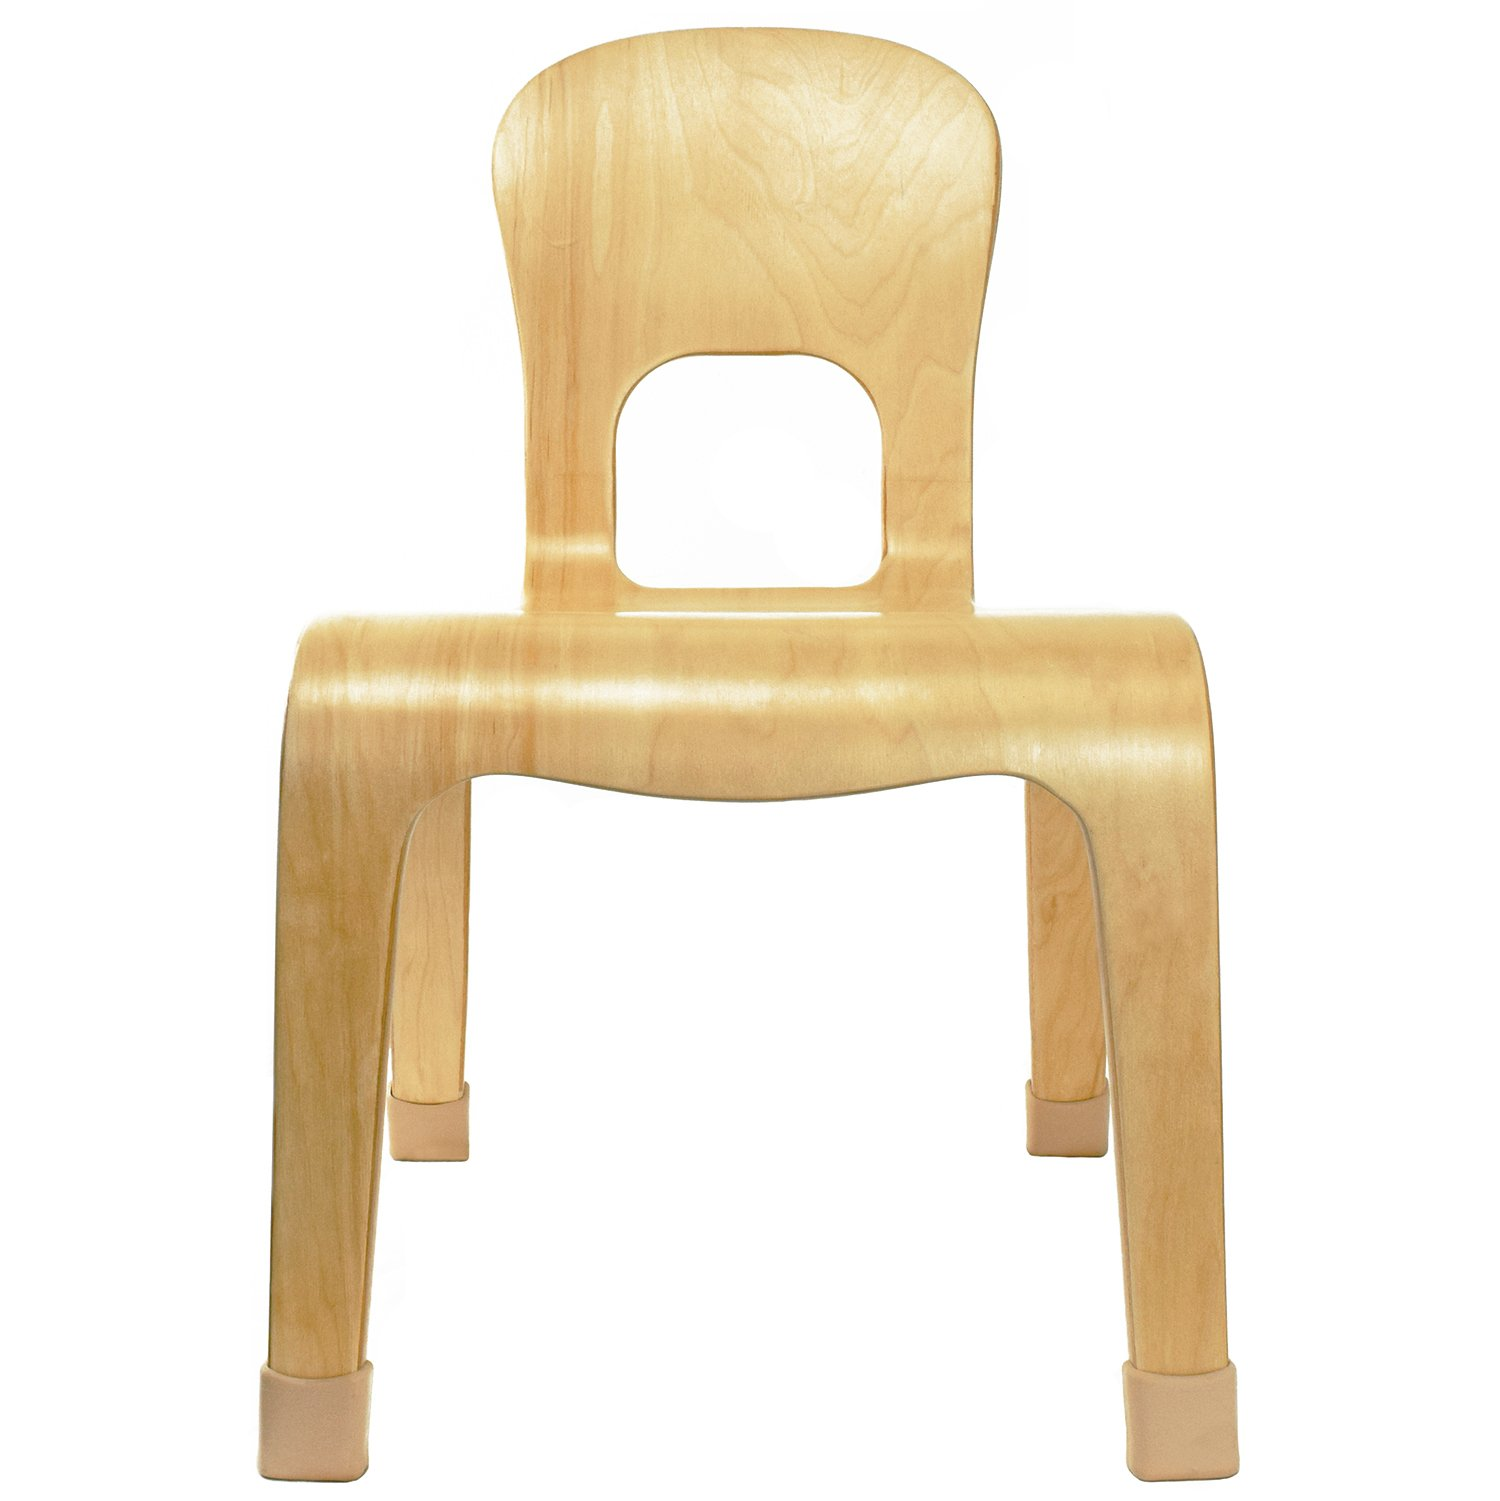 2xhome - Natural Wood - Kids Size Kids Chair Wood Modern Side Chair 10'' Seat Height Real Wooden Childs Chair Childrens Room School Chairs No Arm Arms Armless Molded Wooden Seat Stackable